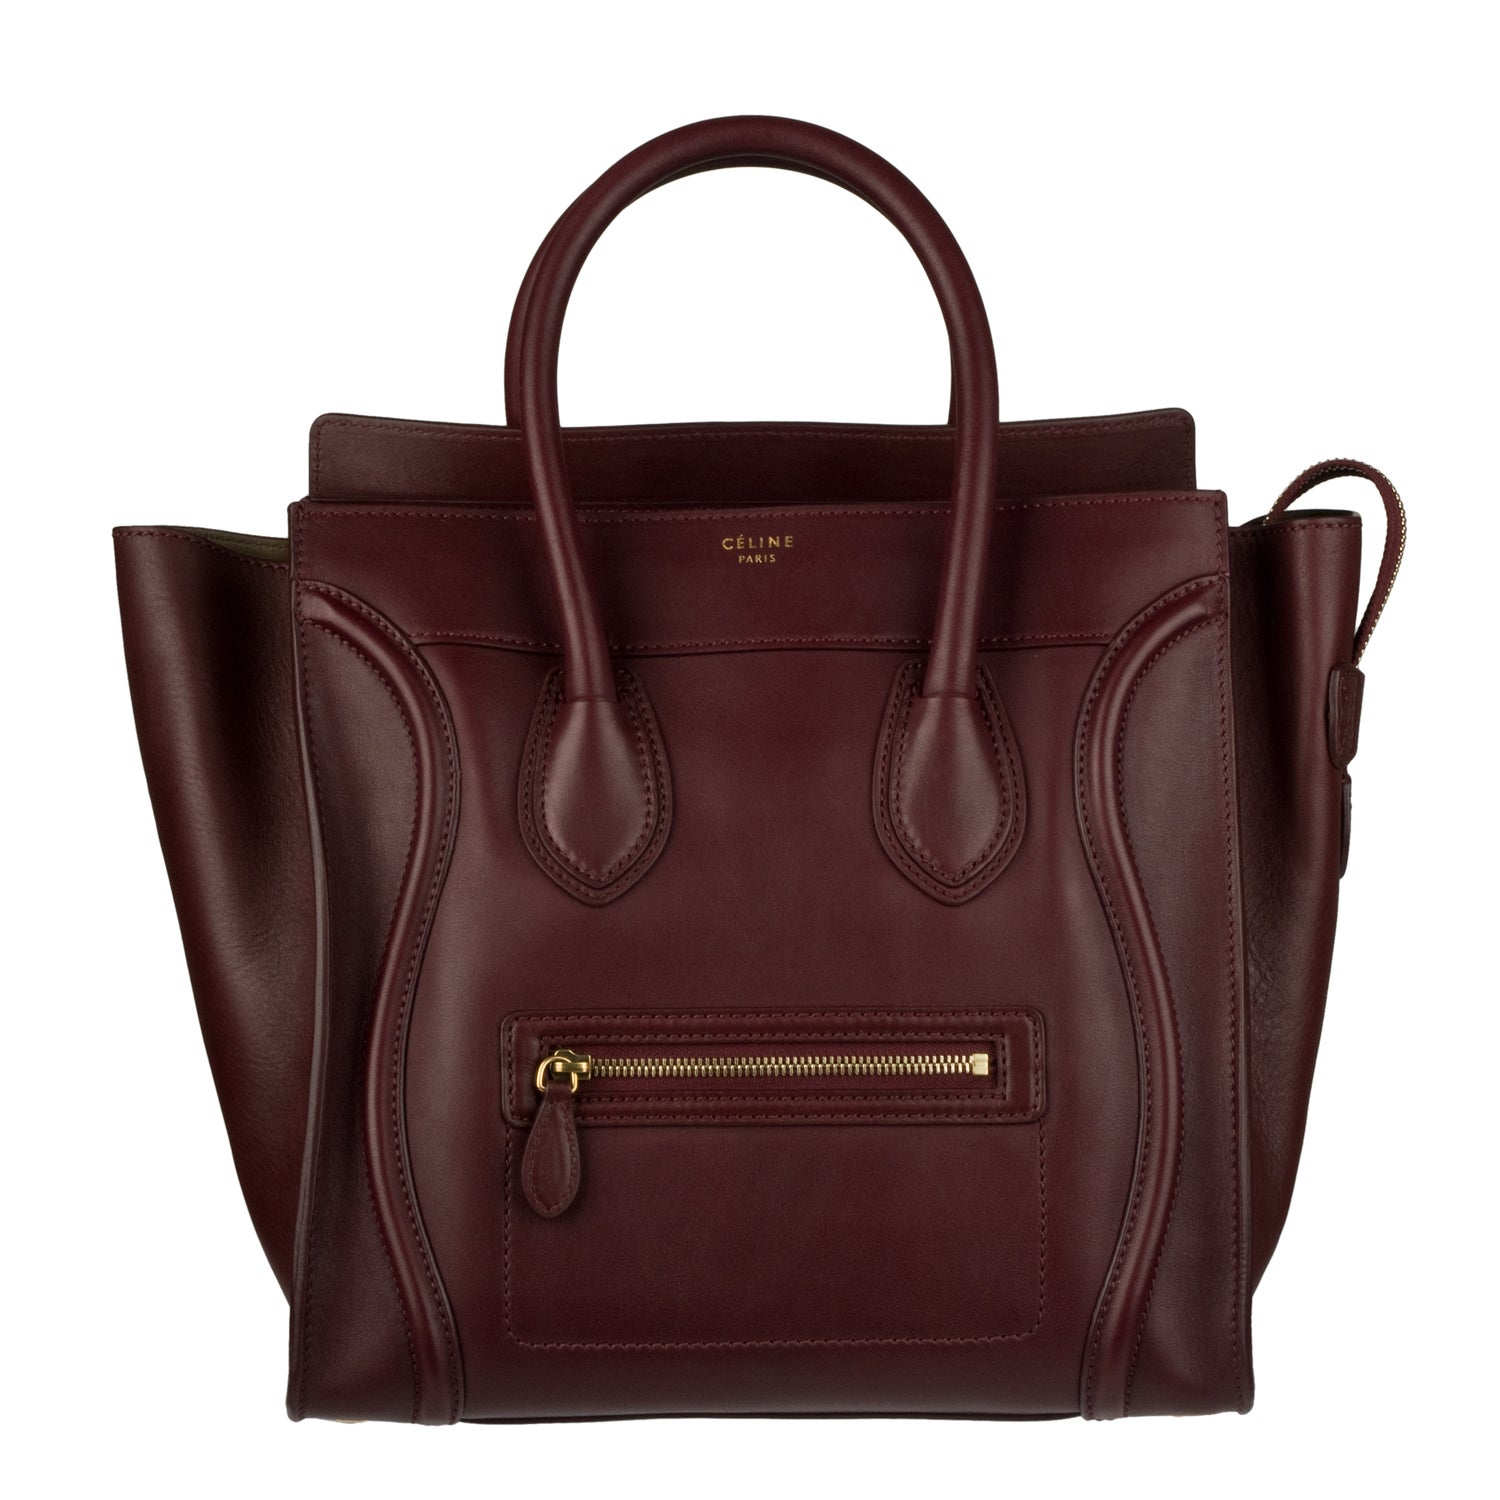 celine bags prices - Celine Burgundy Mini Luggage Tote Bag - 13956661 - Overstock.com ...